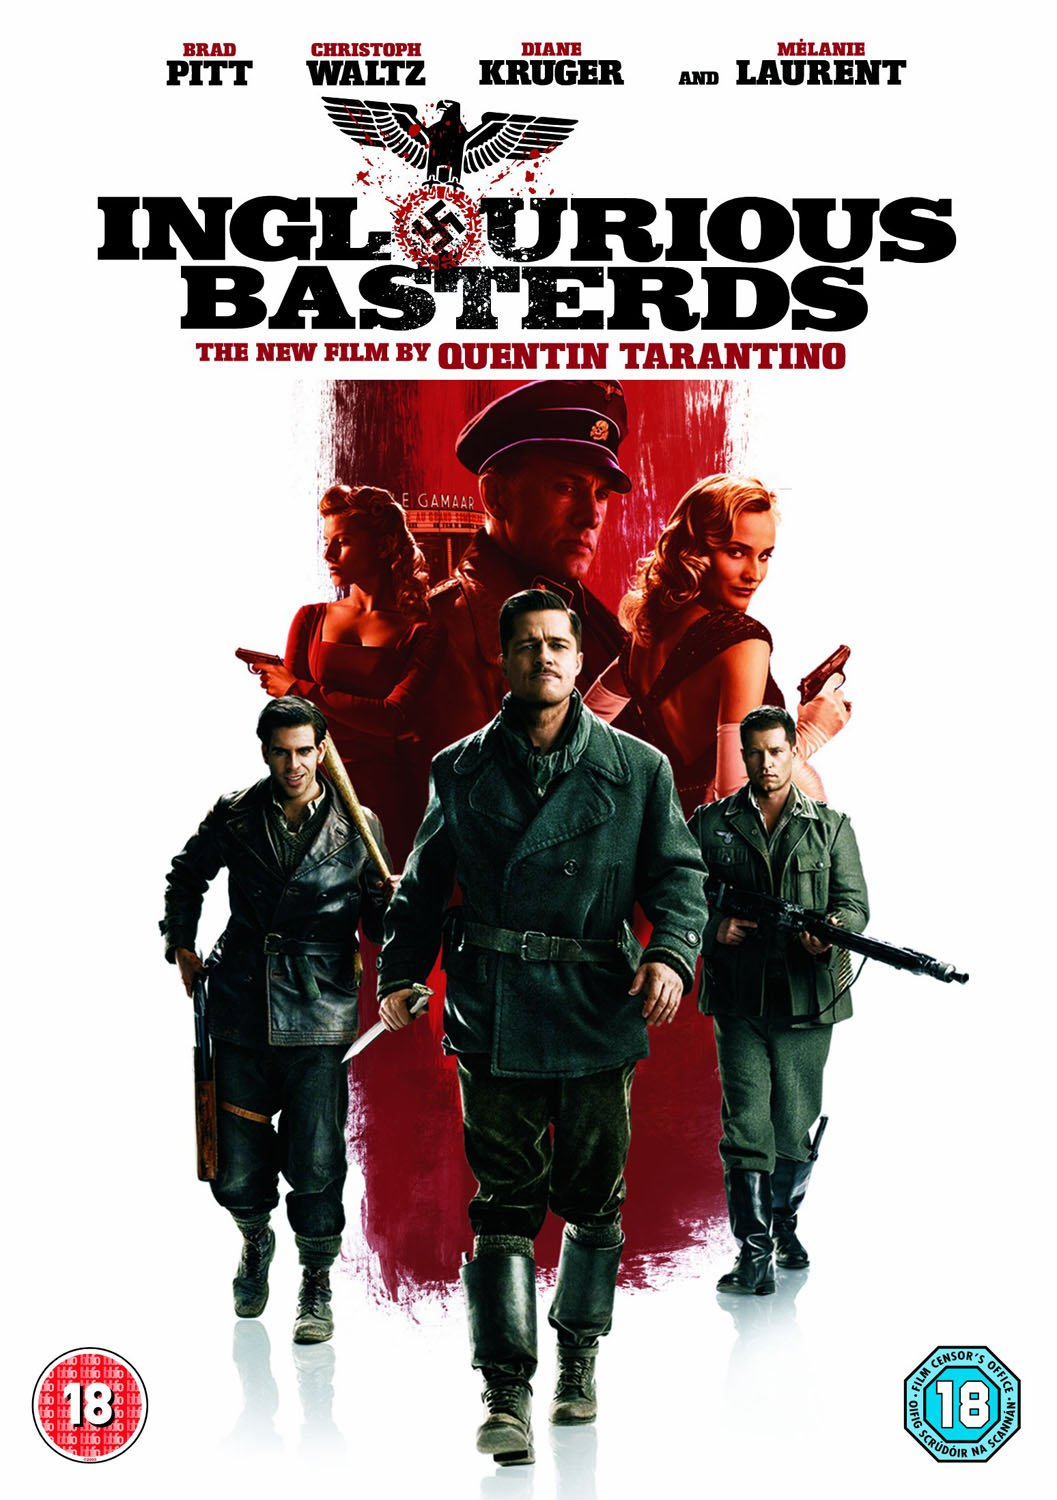 inglourious basterds dvd amazon co uk brad pitt inglourious basterds dvd 2009 amazon co uk brad pitt christoph waltz michael fassbender melanie laurent eli roth mike myers diane kruger